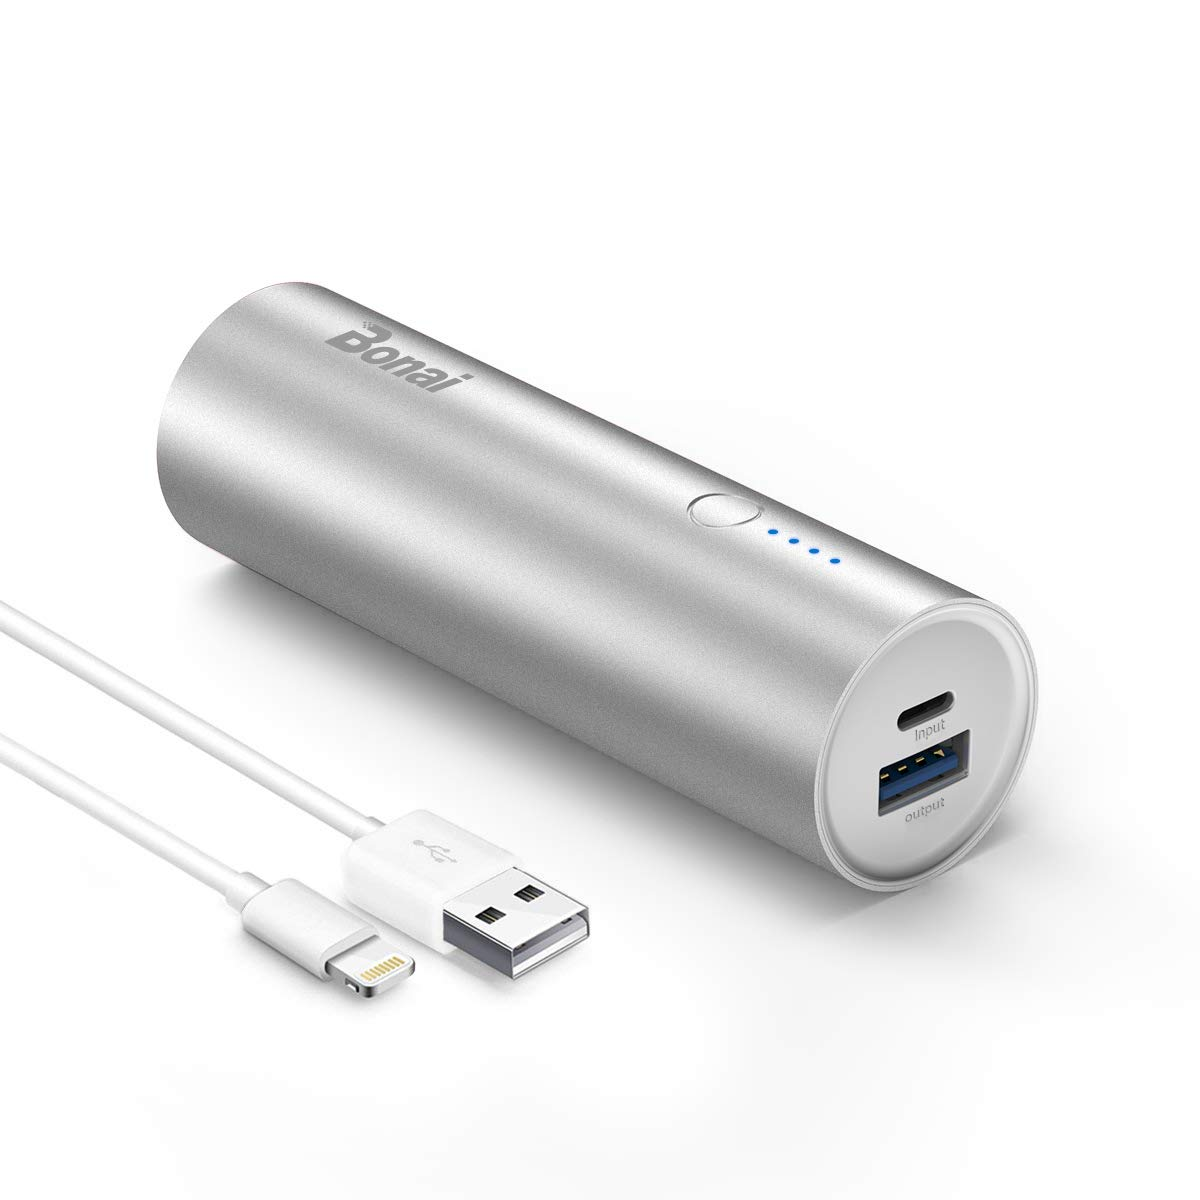 Power Bank Mini Batterie Externe de Secours Charge Rapide 5800 mAh